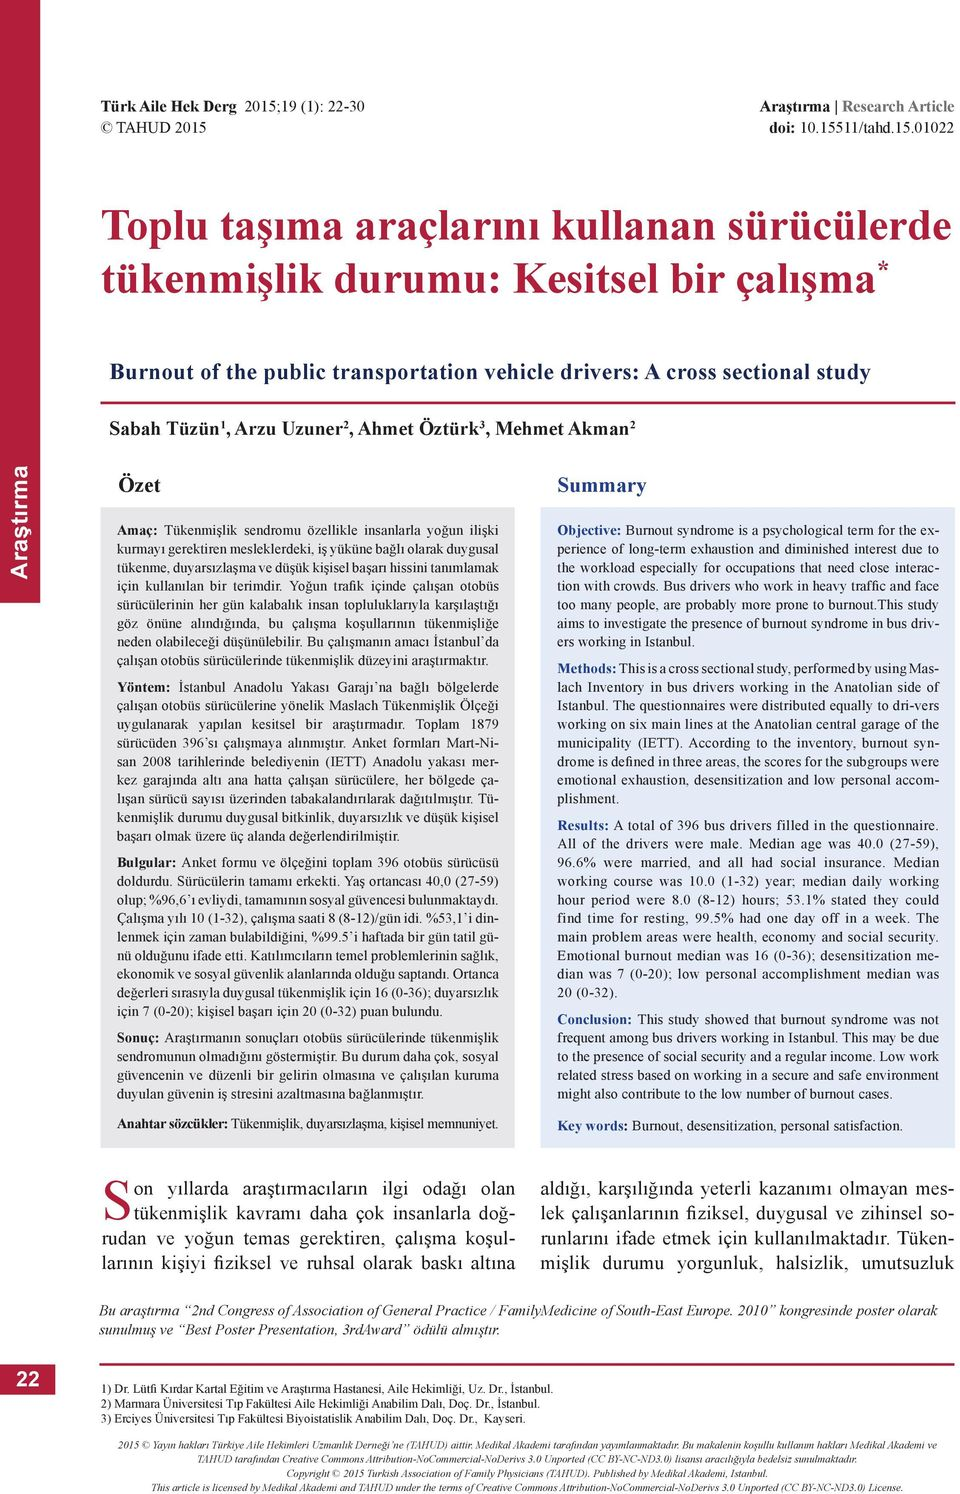 Araştırma Research Article doi: 10.155